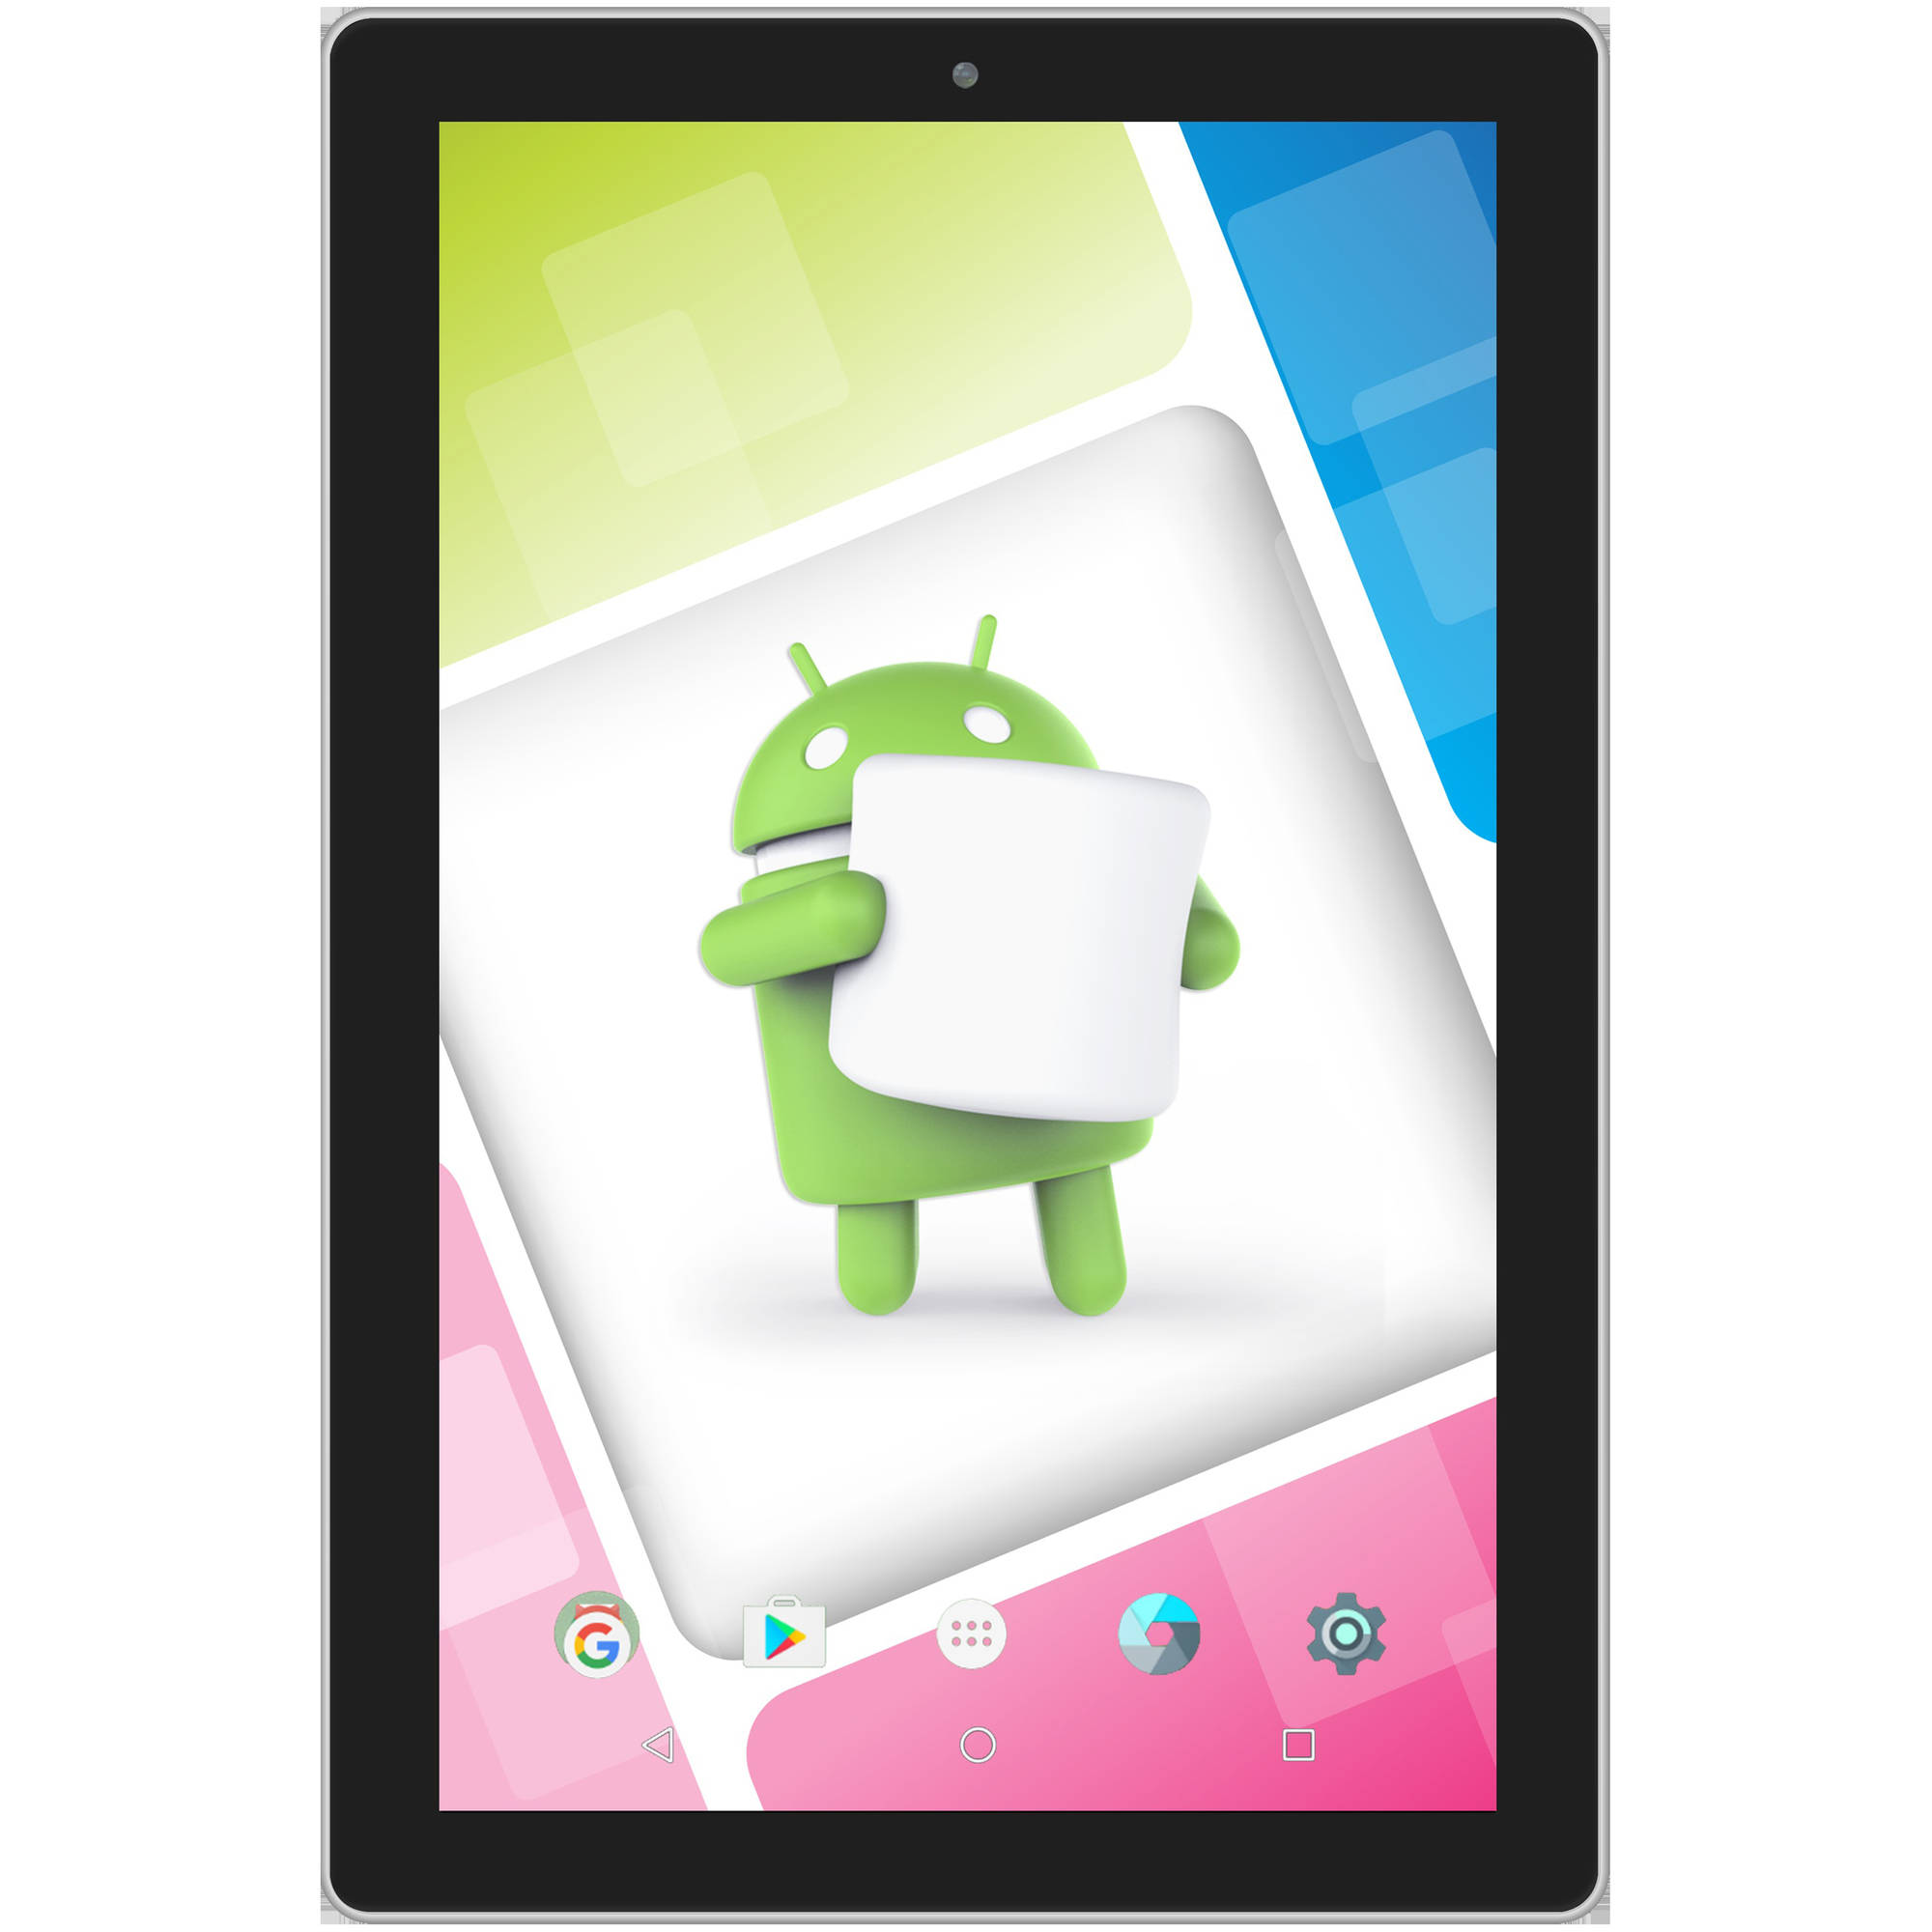 Nextbook Ares 10A 10.1' 32GB Tablet Android 6.0 (Marshmal...